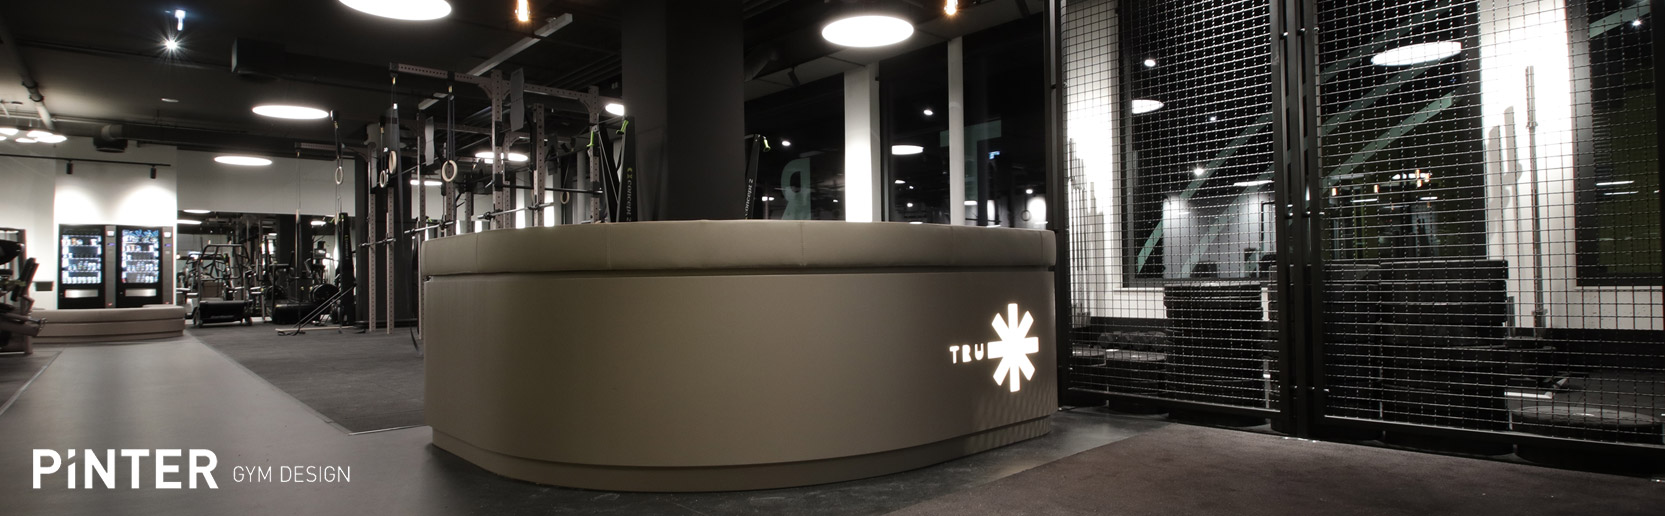 TRU FITNESS HAMBURG - PINTER GYM DESIGN